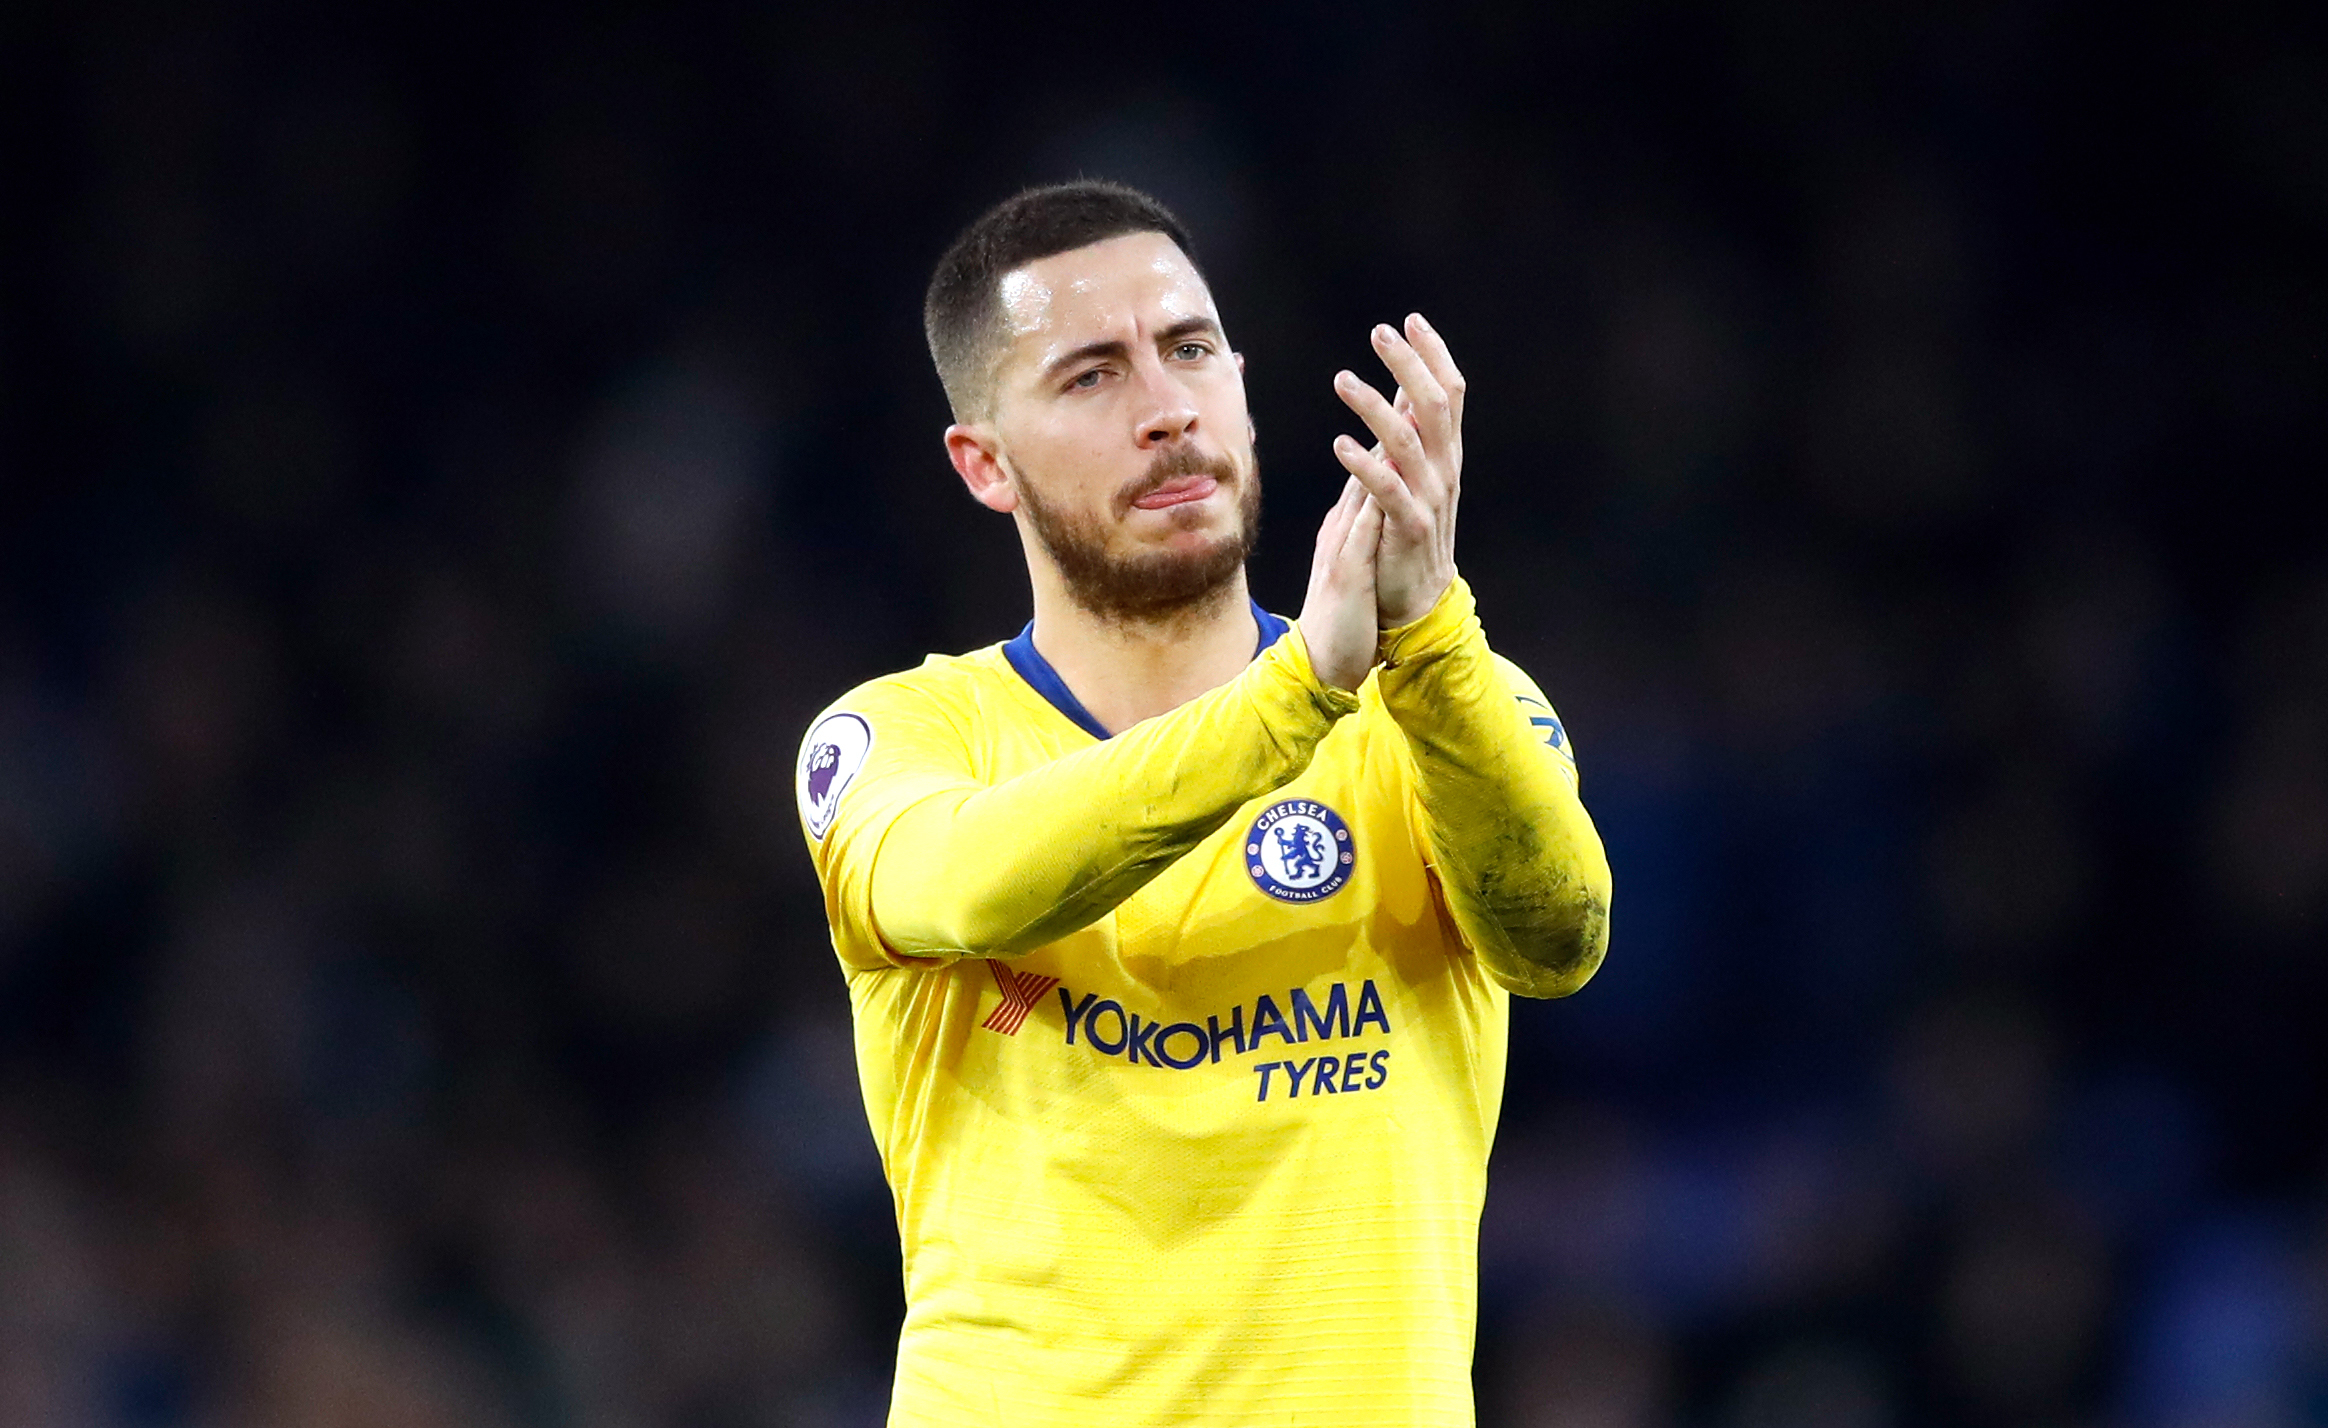 Eden Hazard has made a decision to move to Real Madrid this summer-AS